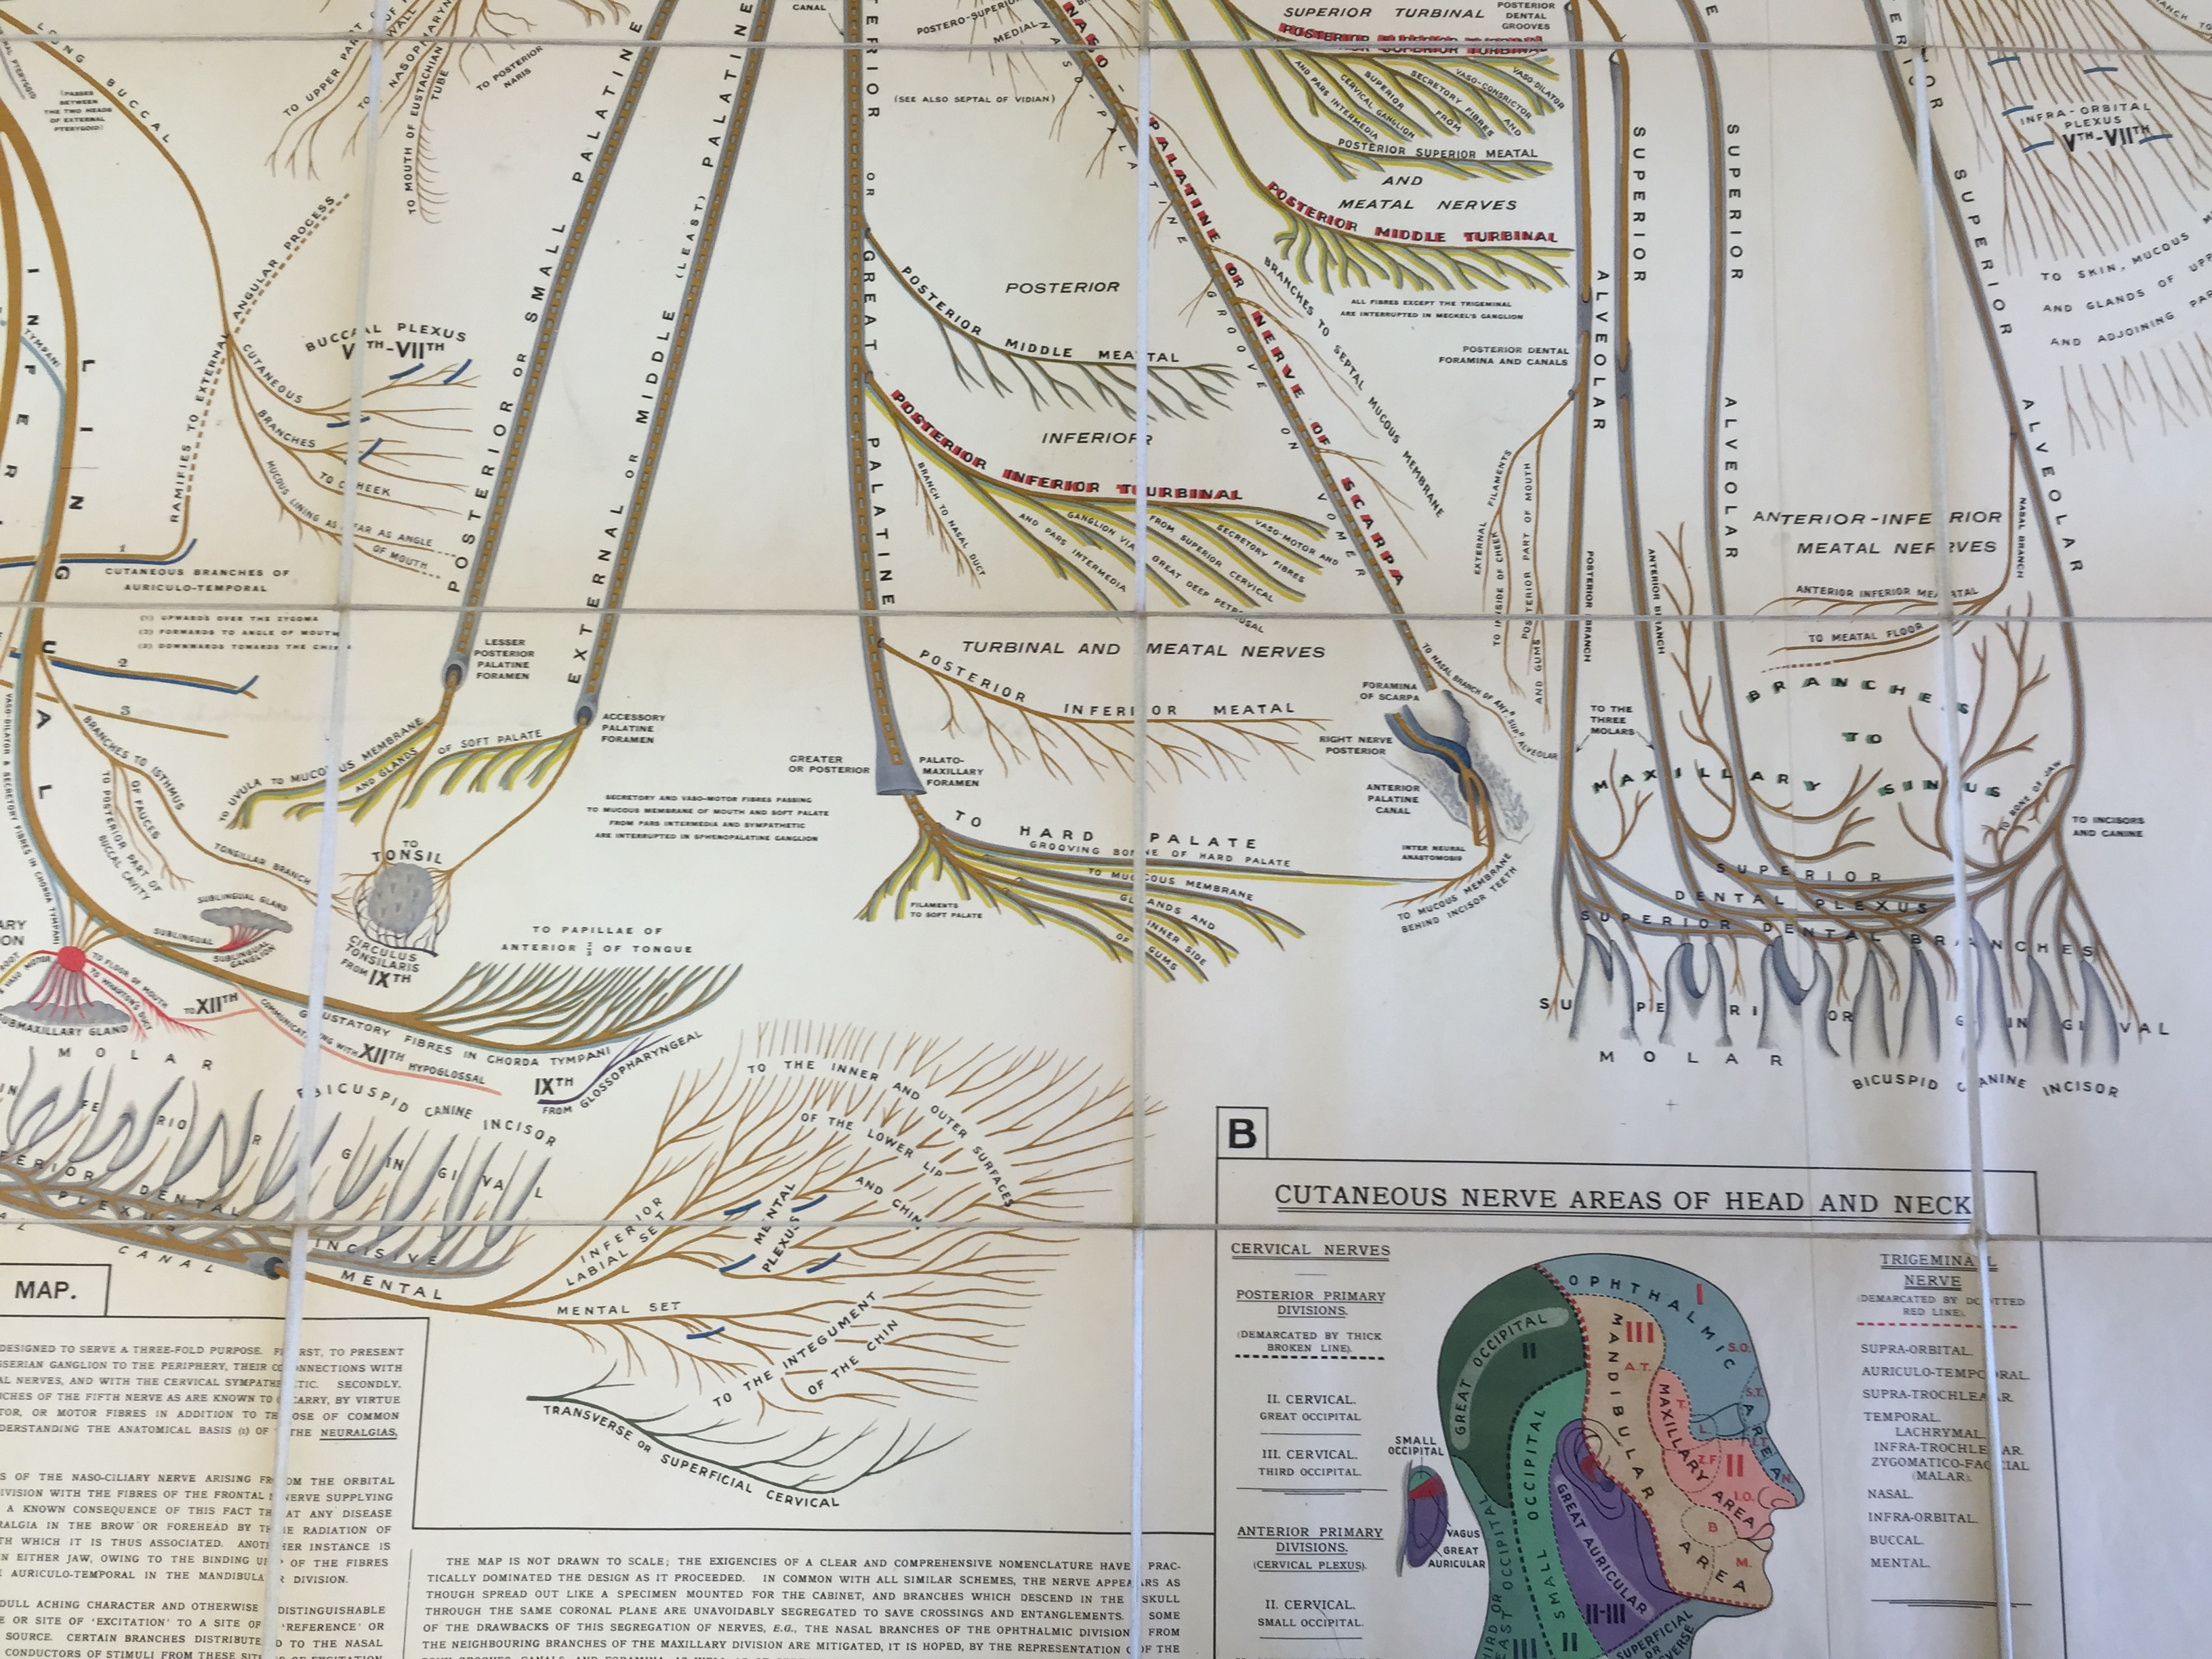 Image of facial nerve map